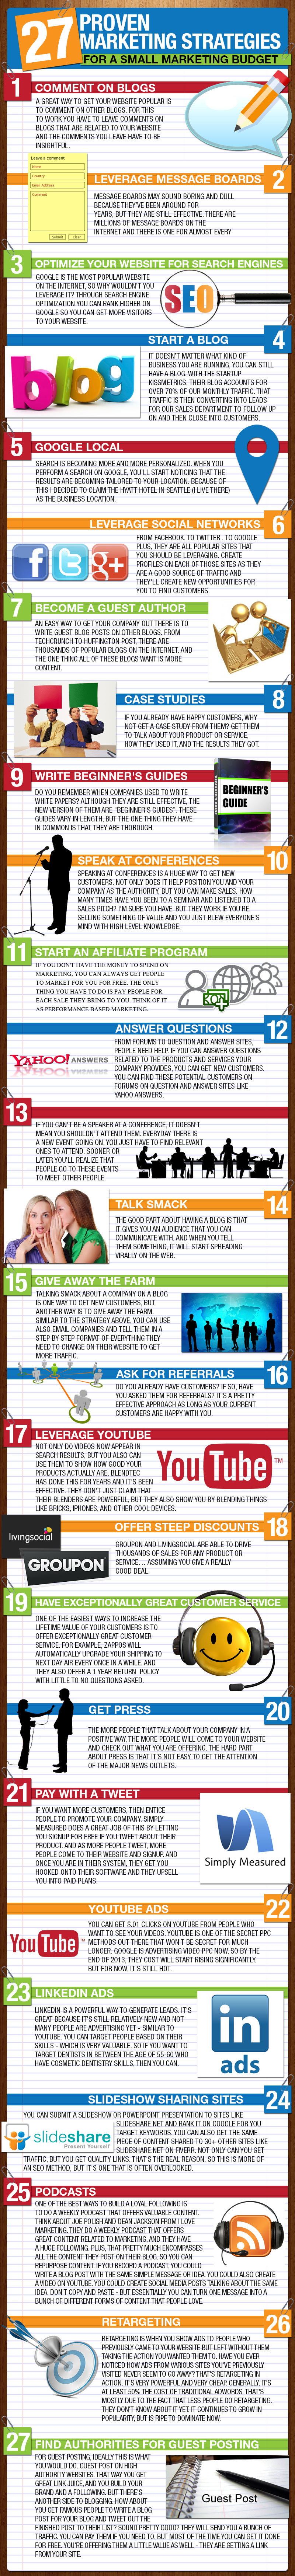 27-best-marketing-strategies-infographic